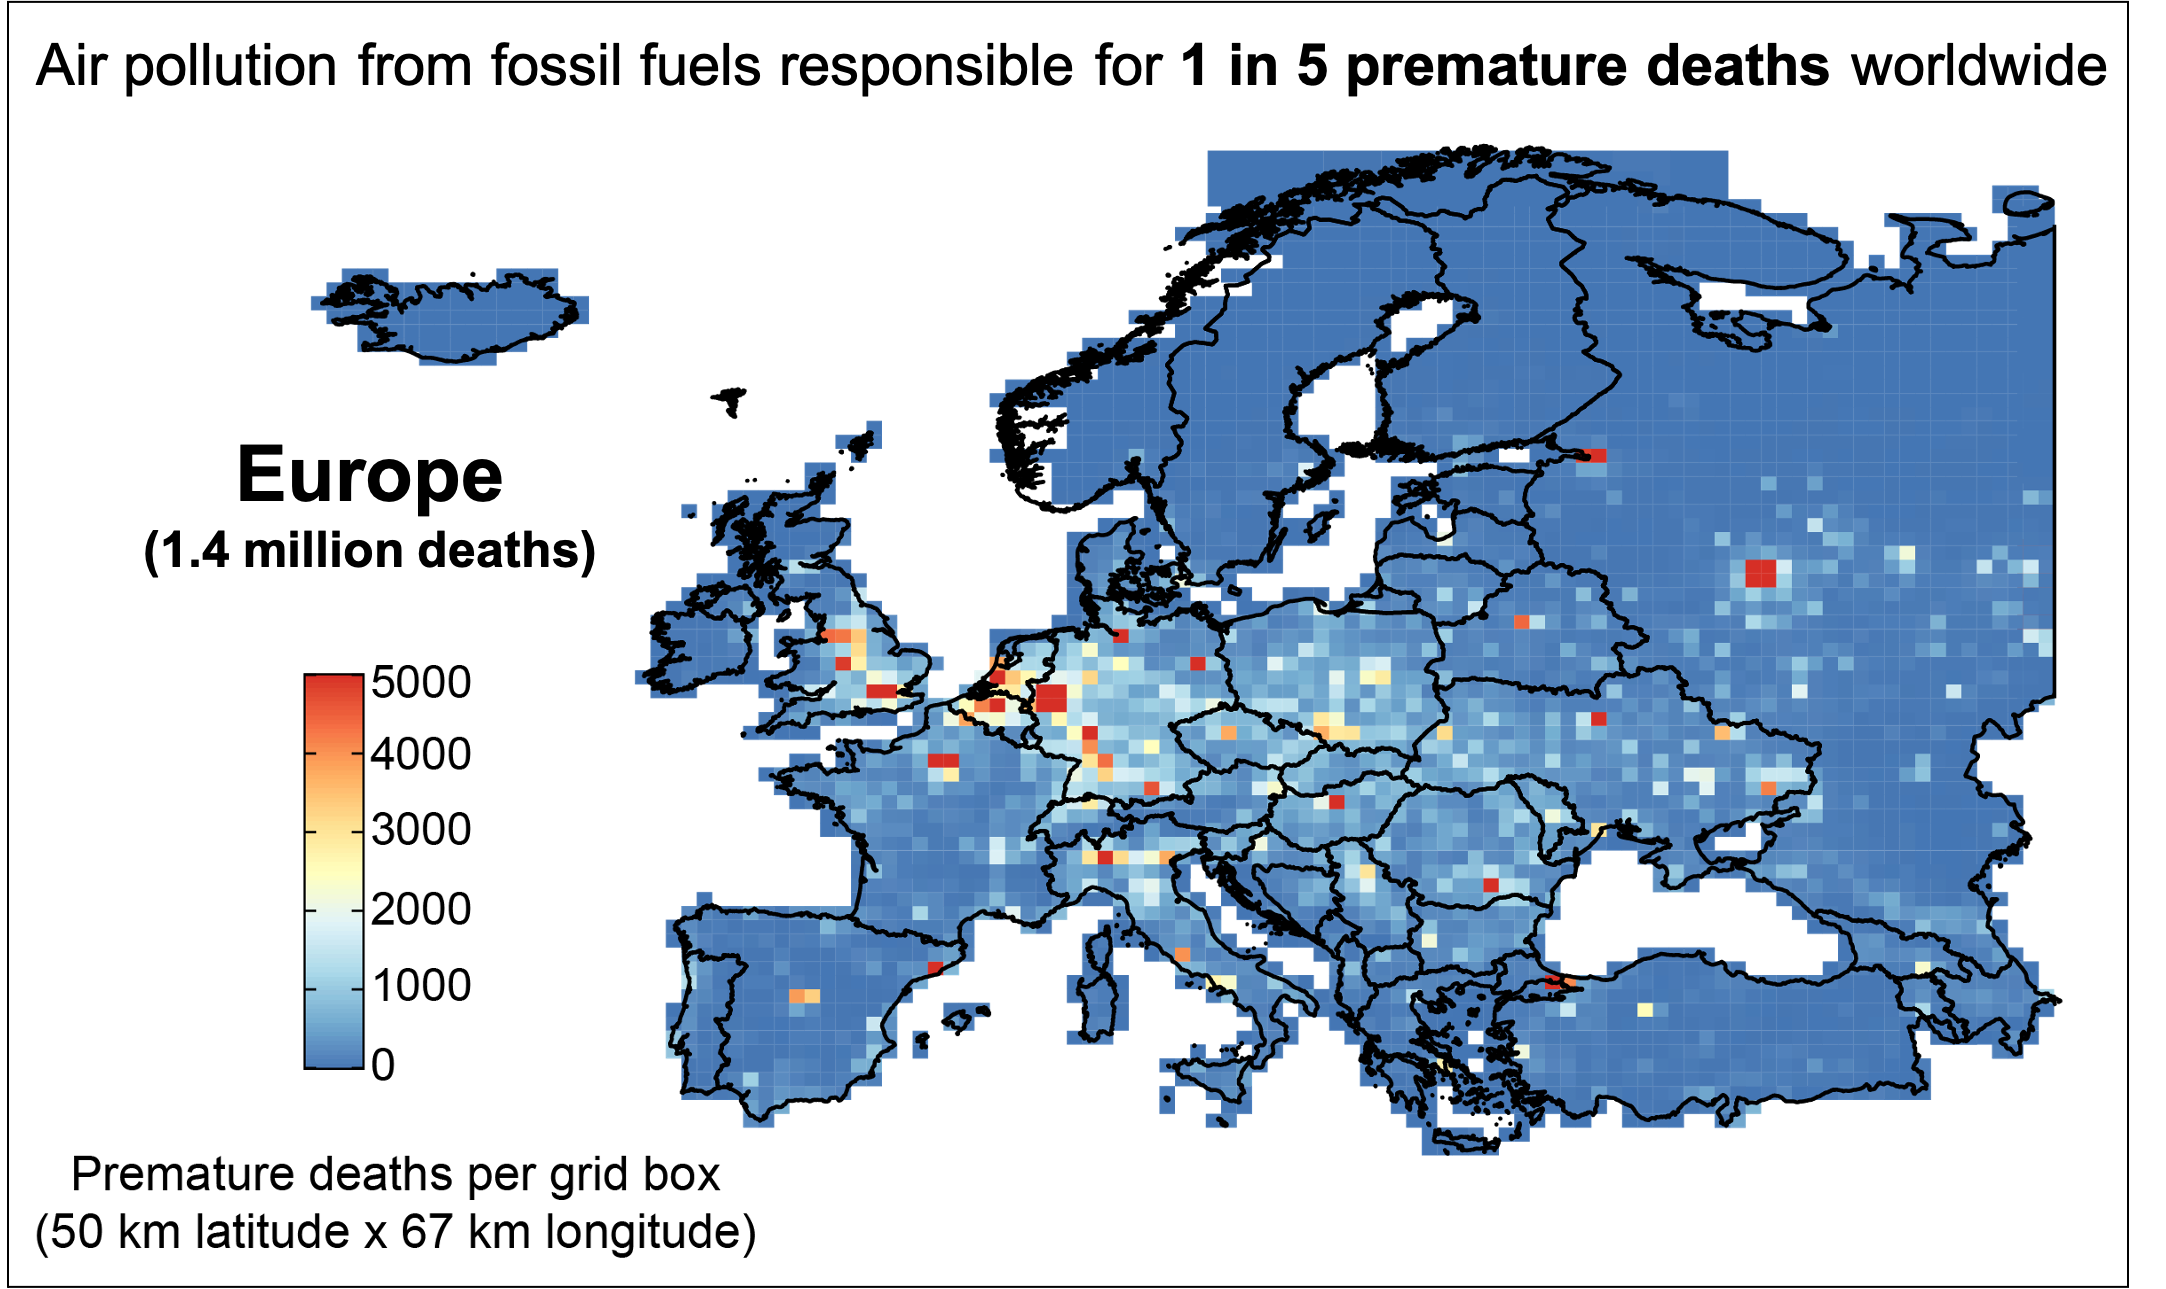 Premature mortality in Europe due to fossil fuel air pollution